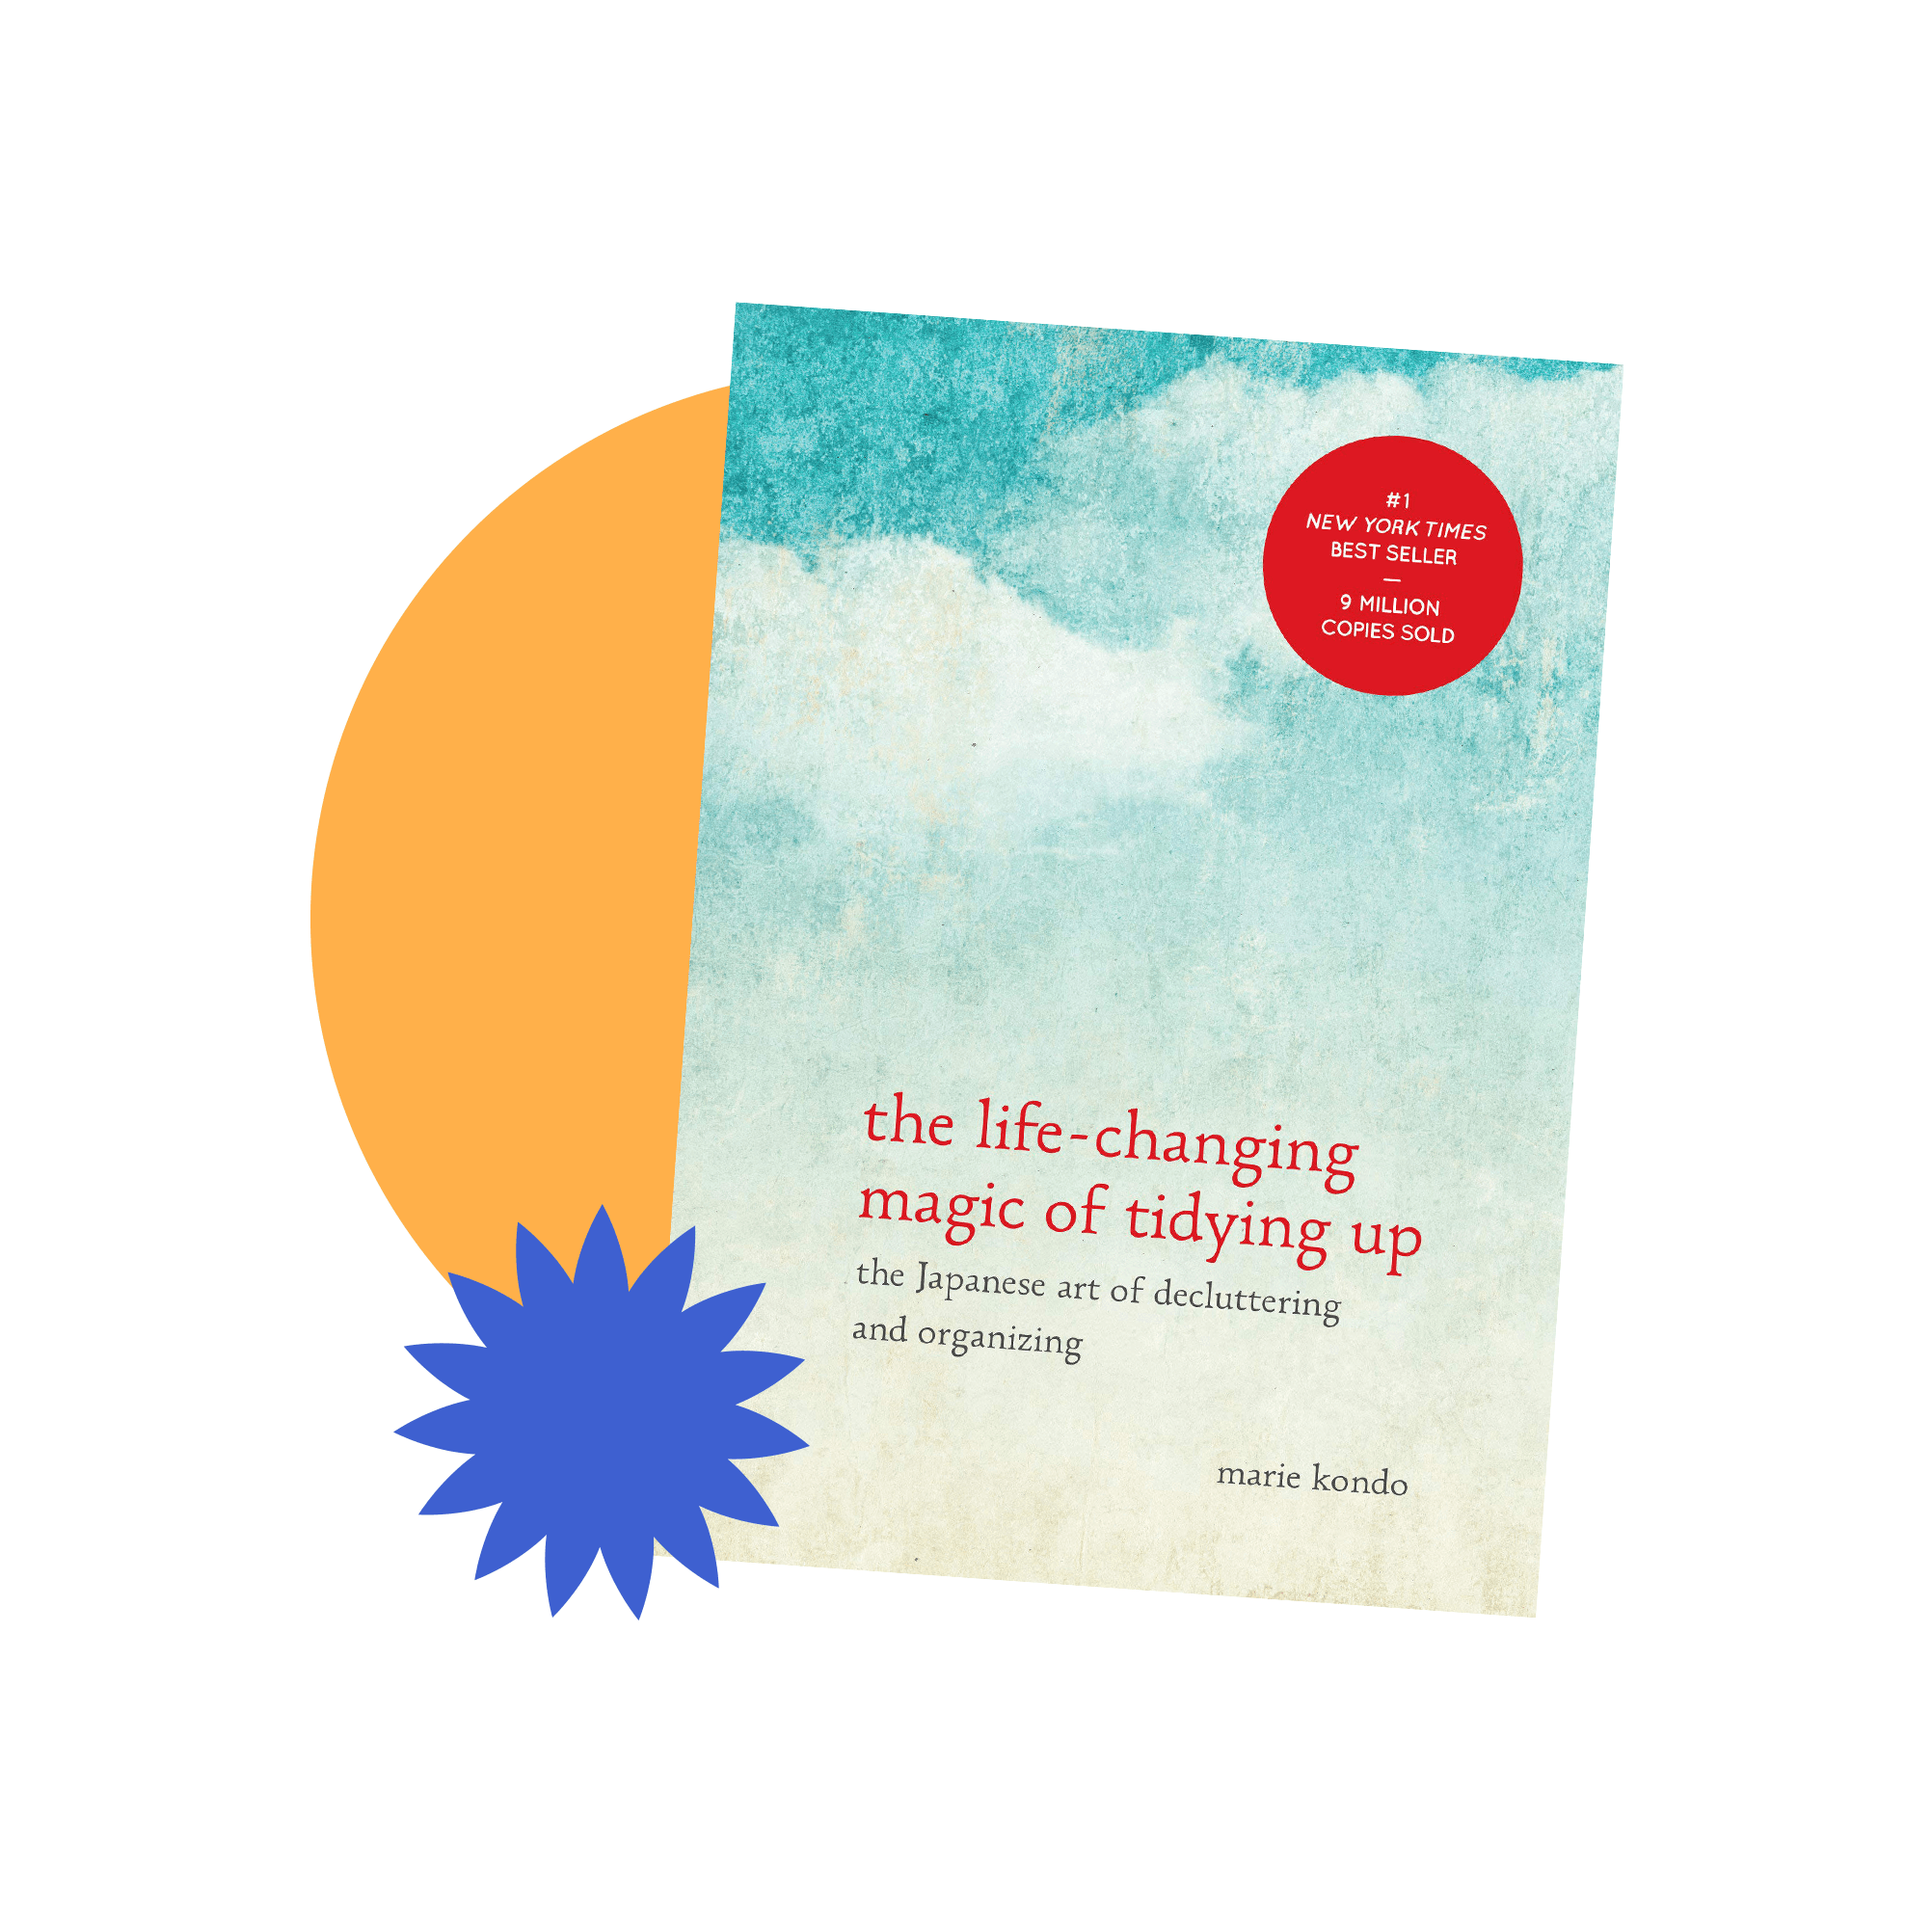 Book jacket cover for The Life-Changing Magic of Tidying Up by Marie Kondo